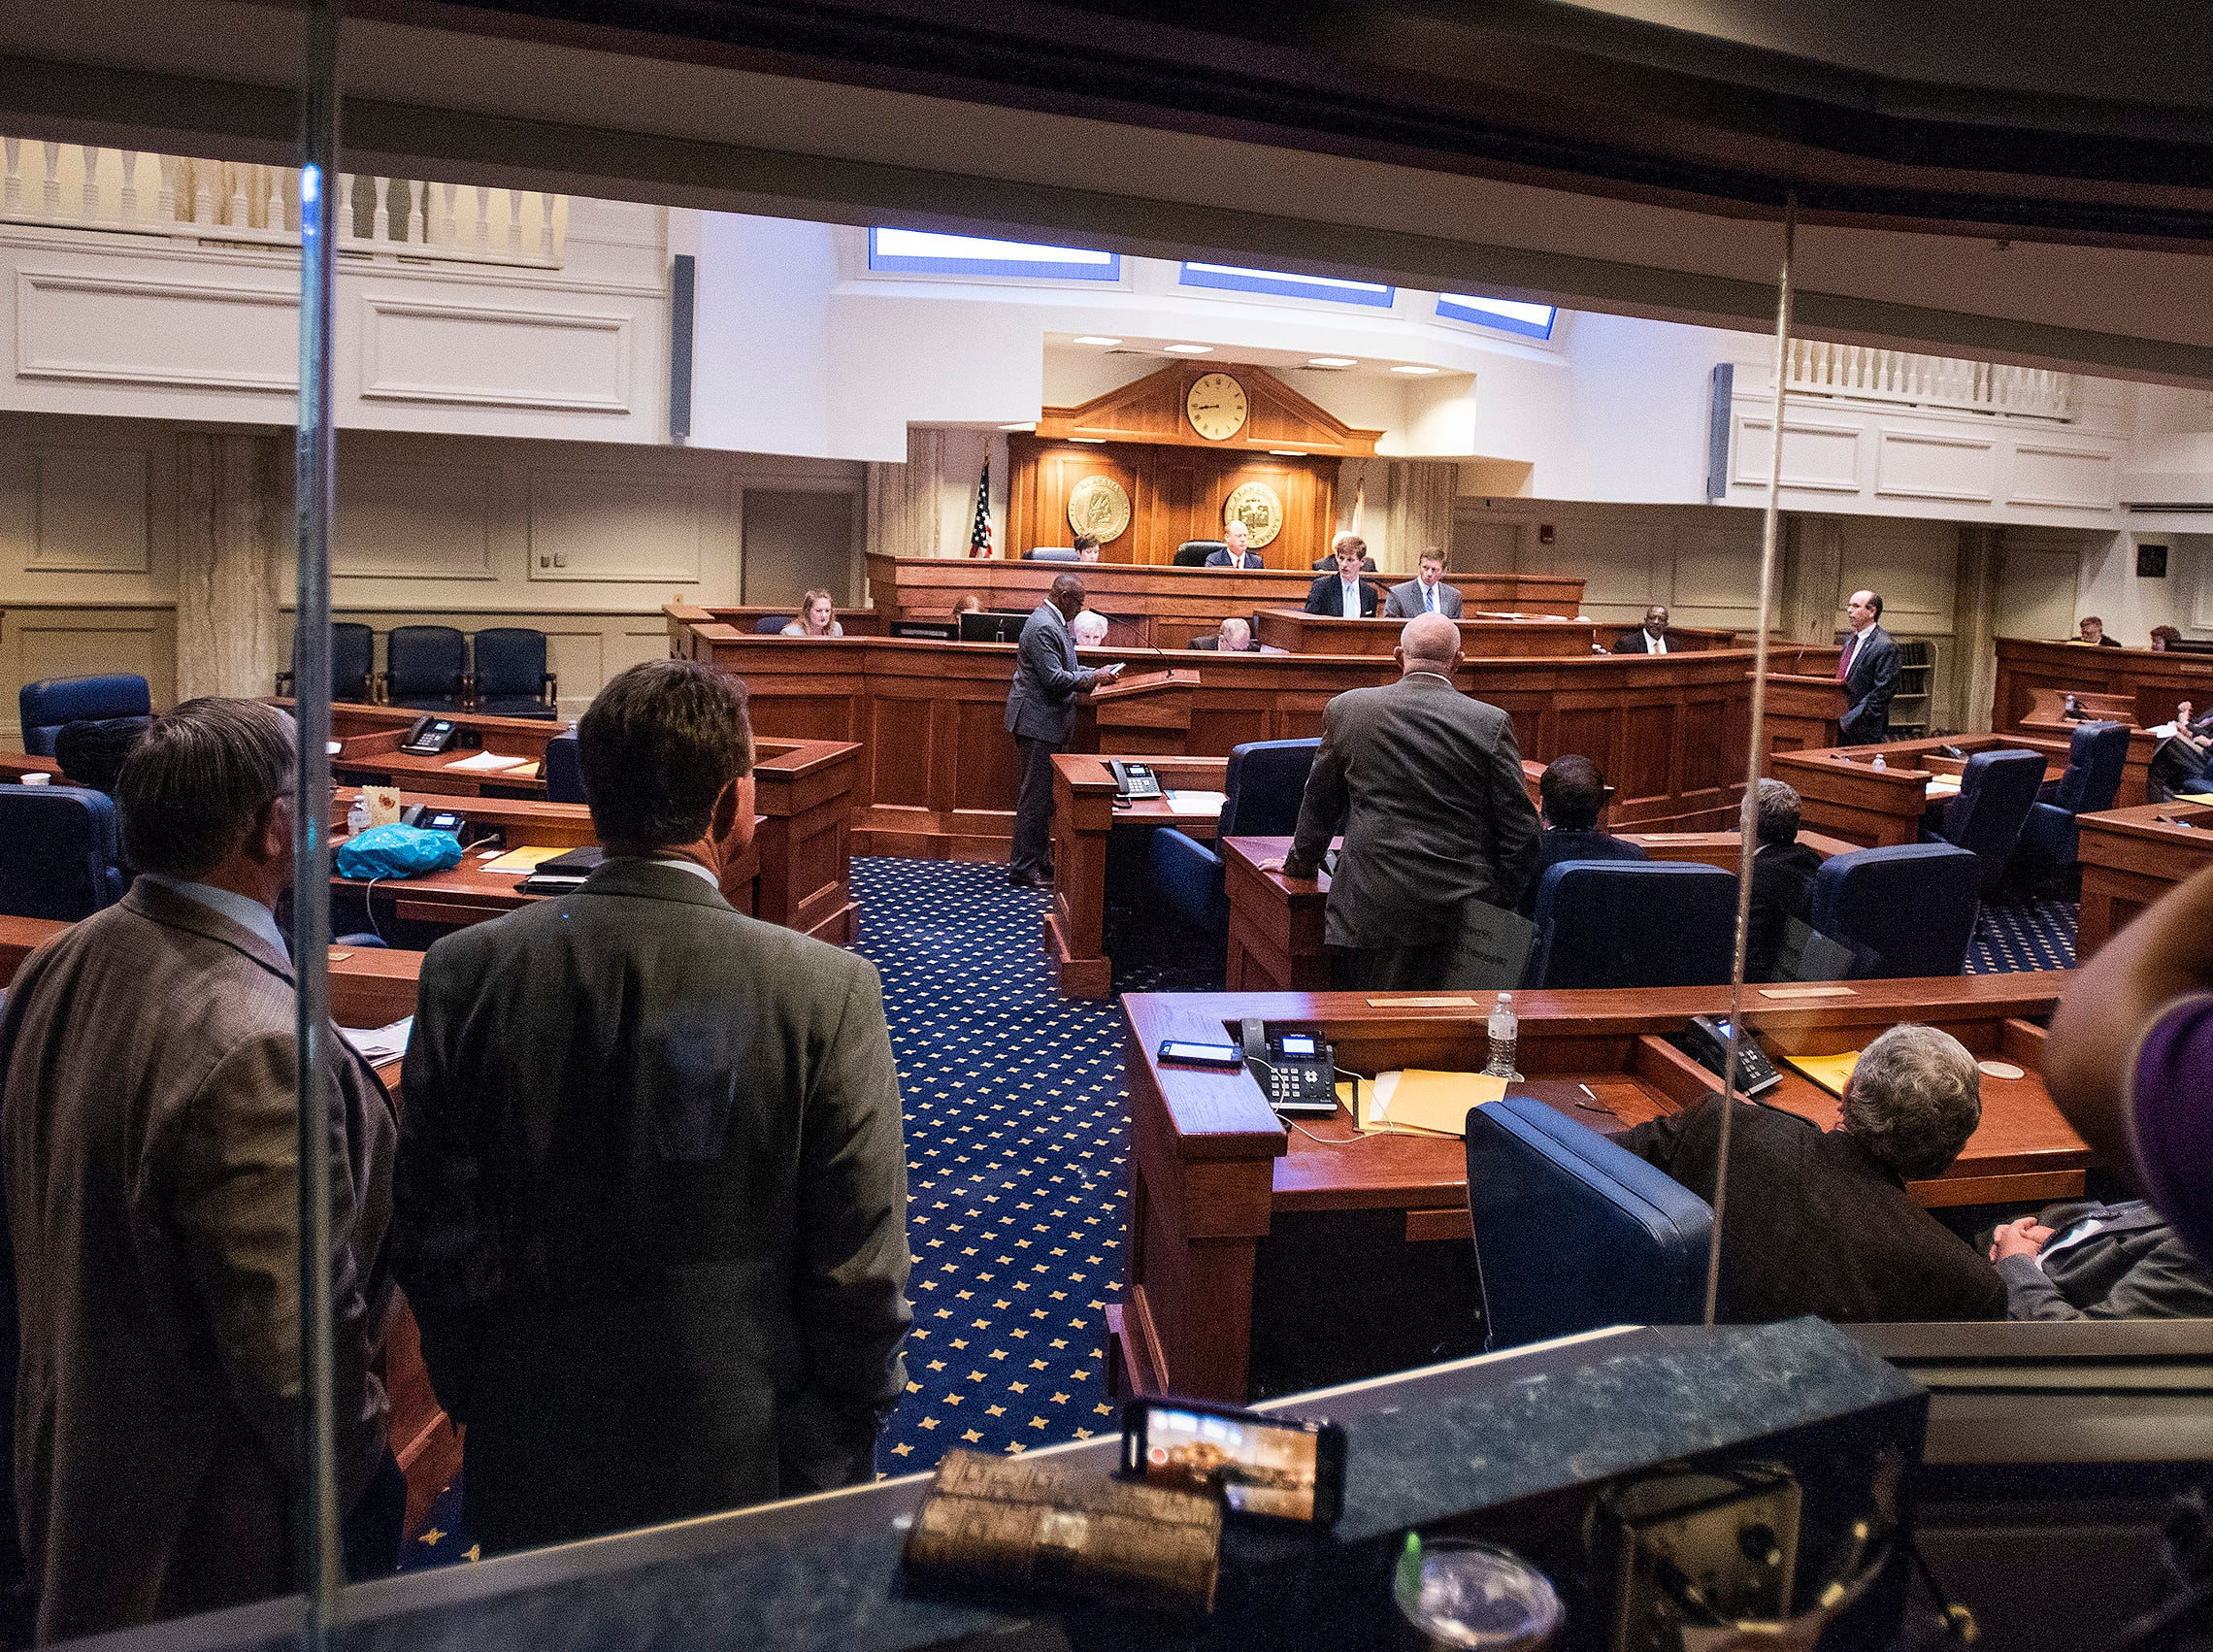 Debate on HB314, the near-total ban on abortion bill, is held in the senate chamber in the Alabama Statehouse in Montgomery, Ala., on Tuesday May 14, 2019.